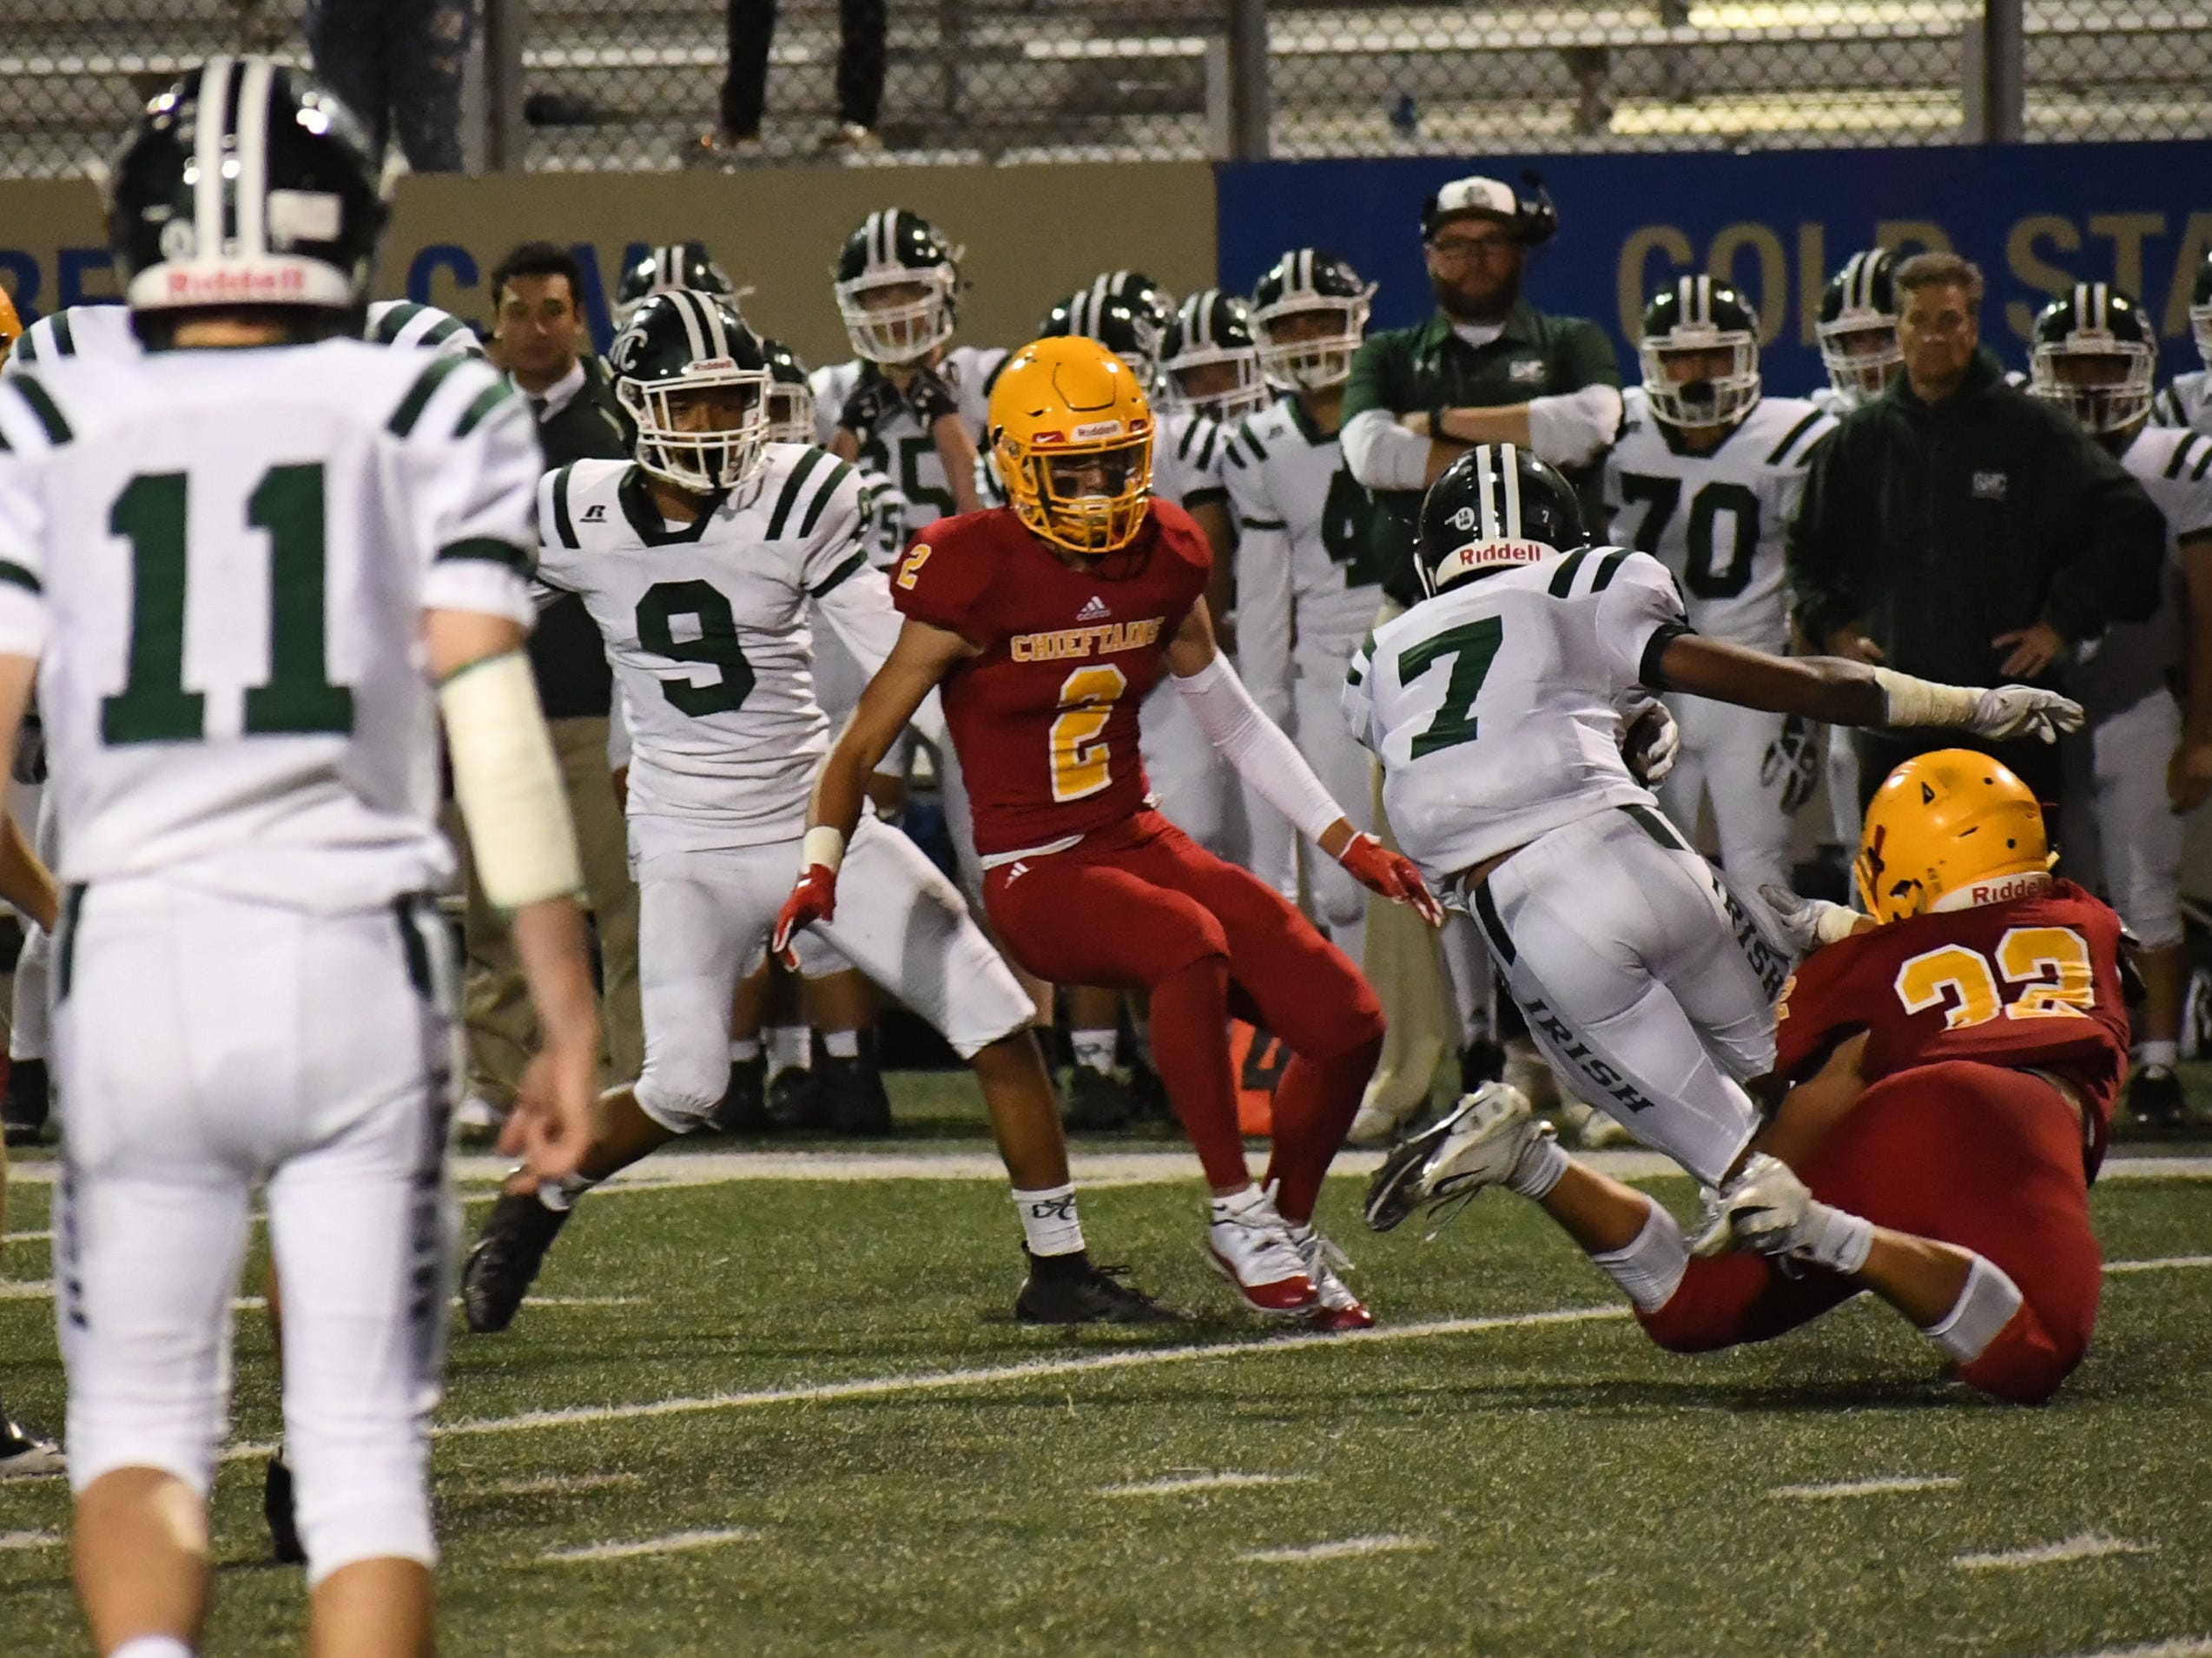 Palma defenders Diego Guajardo (32) and Matteo Martinez (2) close in on a Sacred Heart Cathedral wide receiver.